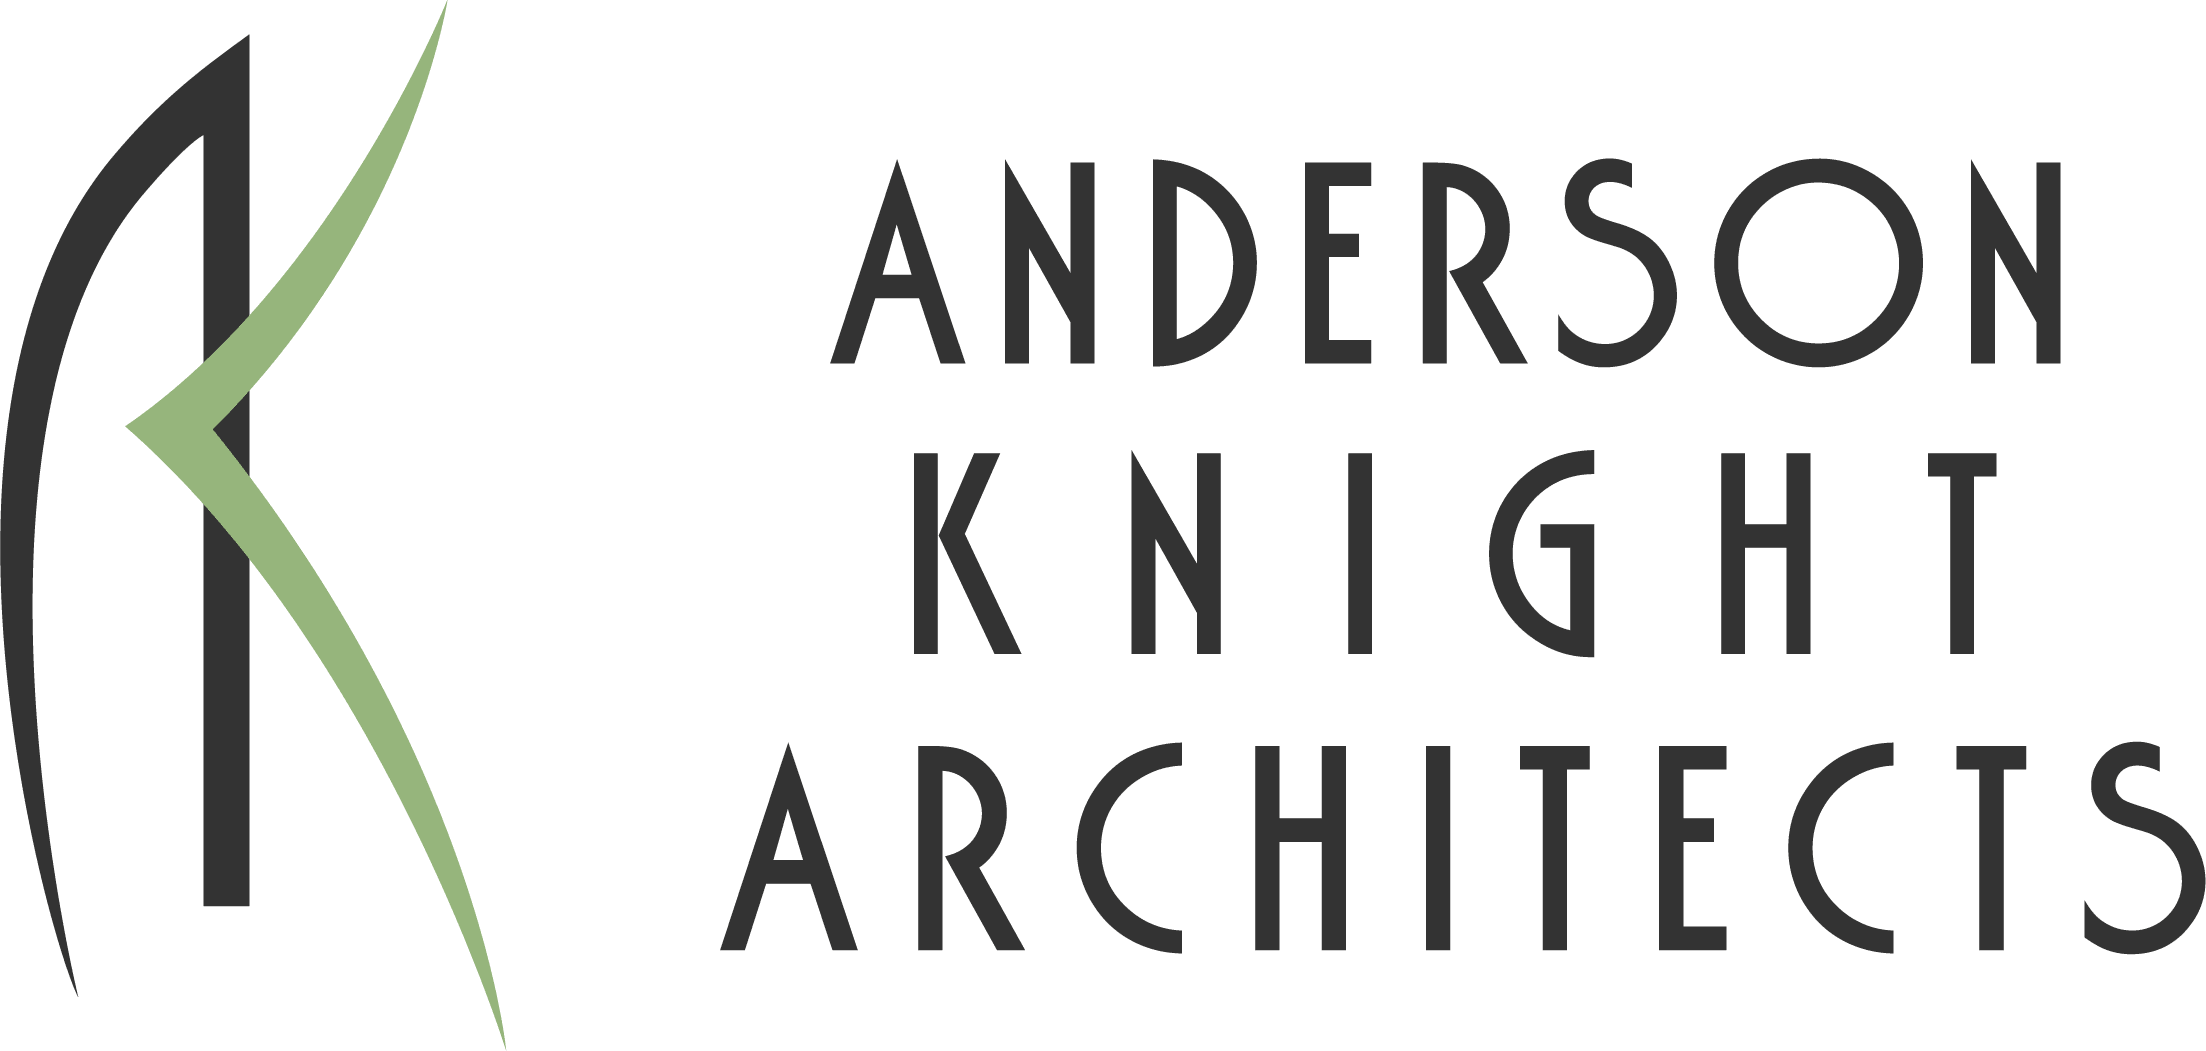 Anderson Knight updown